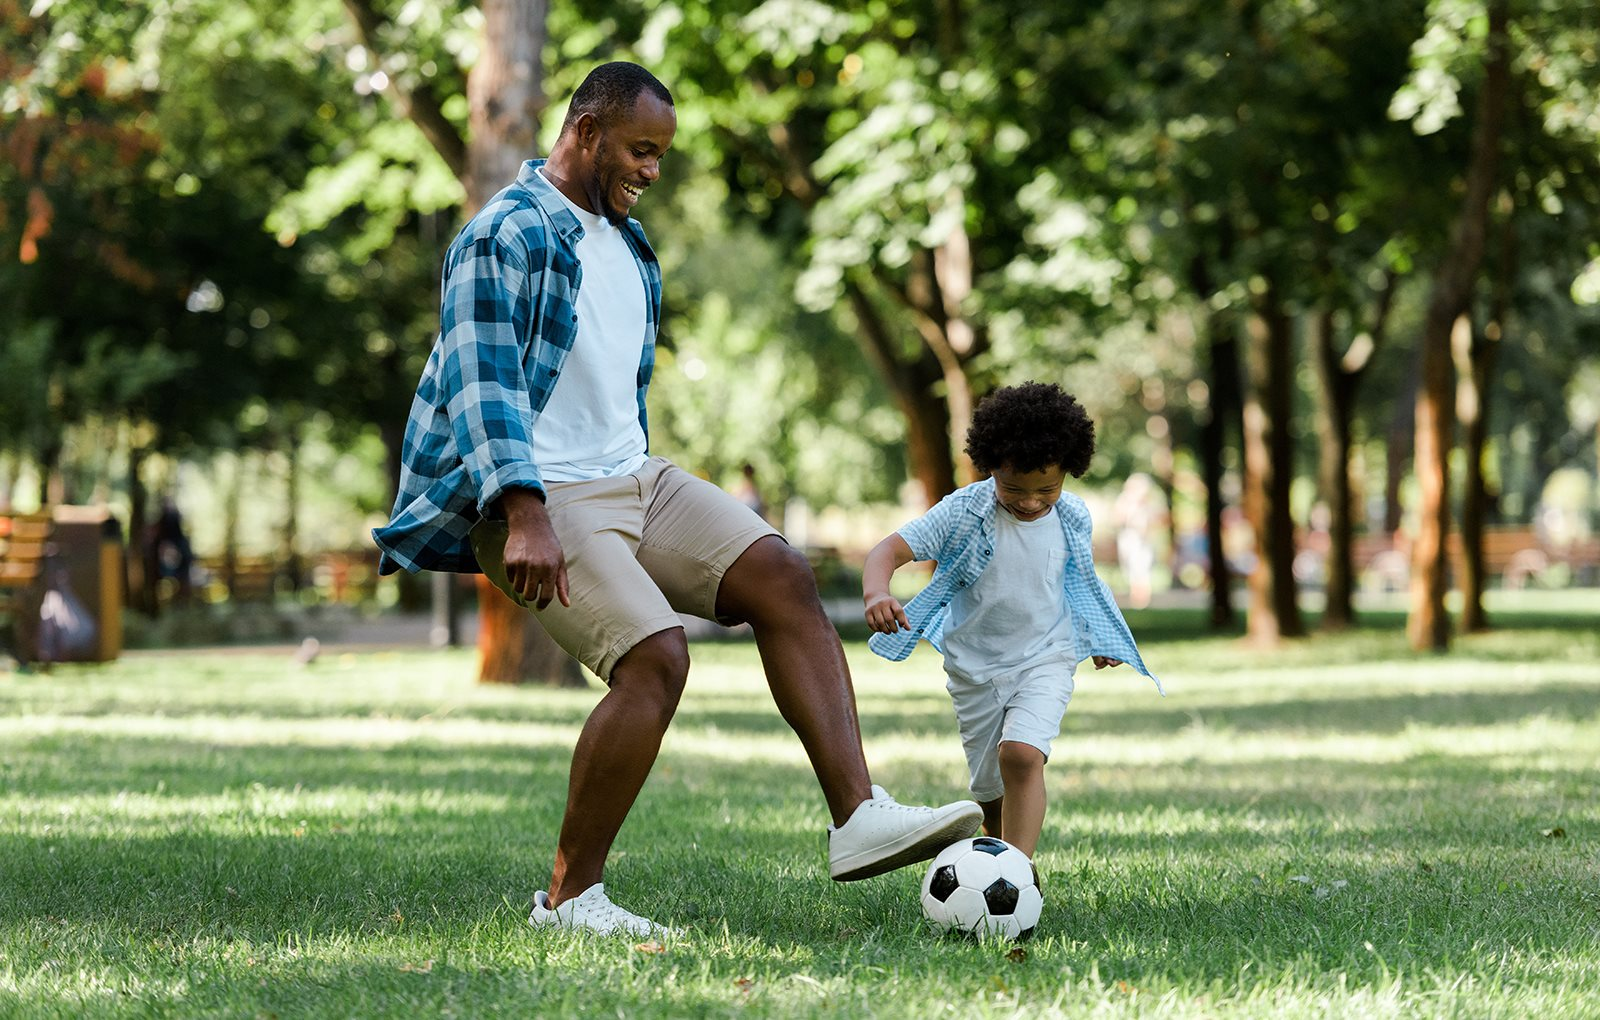 Dan and son playing with ball